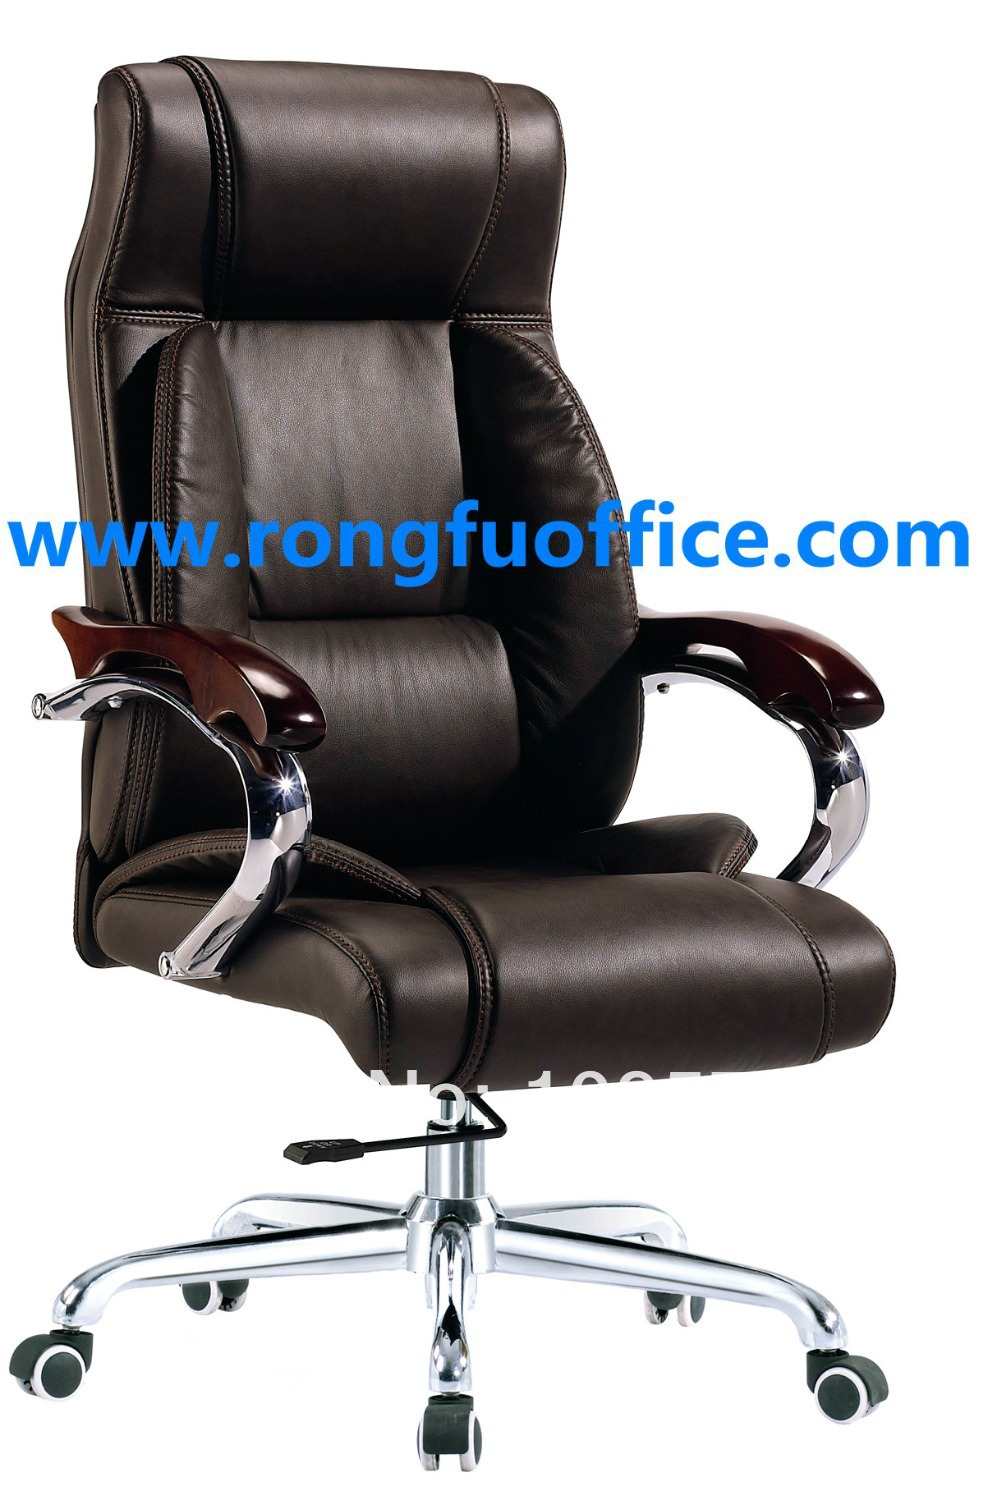 2014 New design office chairs/manager chair/boss chair RF O9036A-in Office Chairs from Furniture on Aliexpress.com | Alibaba Group  sc 1 st  AliExpress.com & 2014 New design office chairs/manager chair/boss chair RF O9036A-in ...